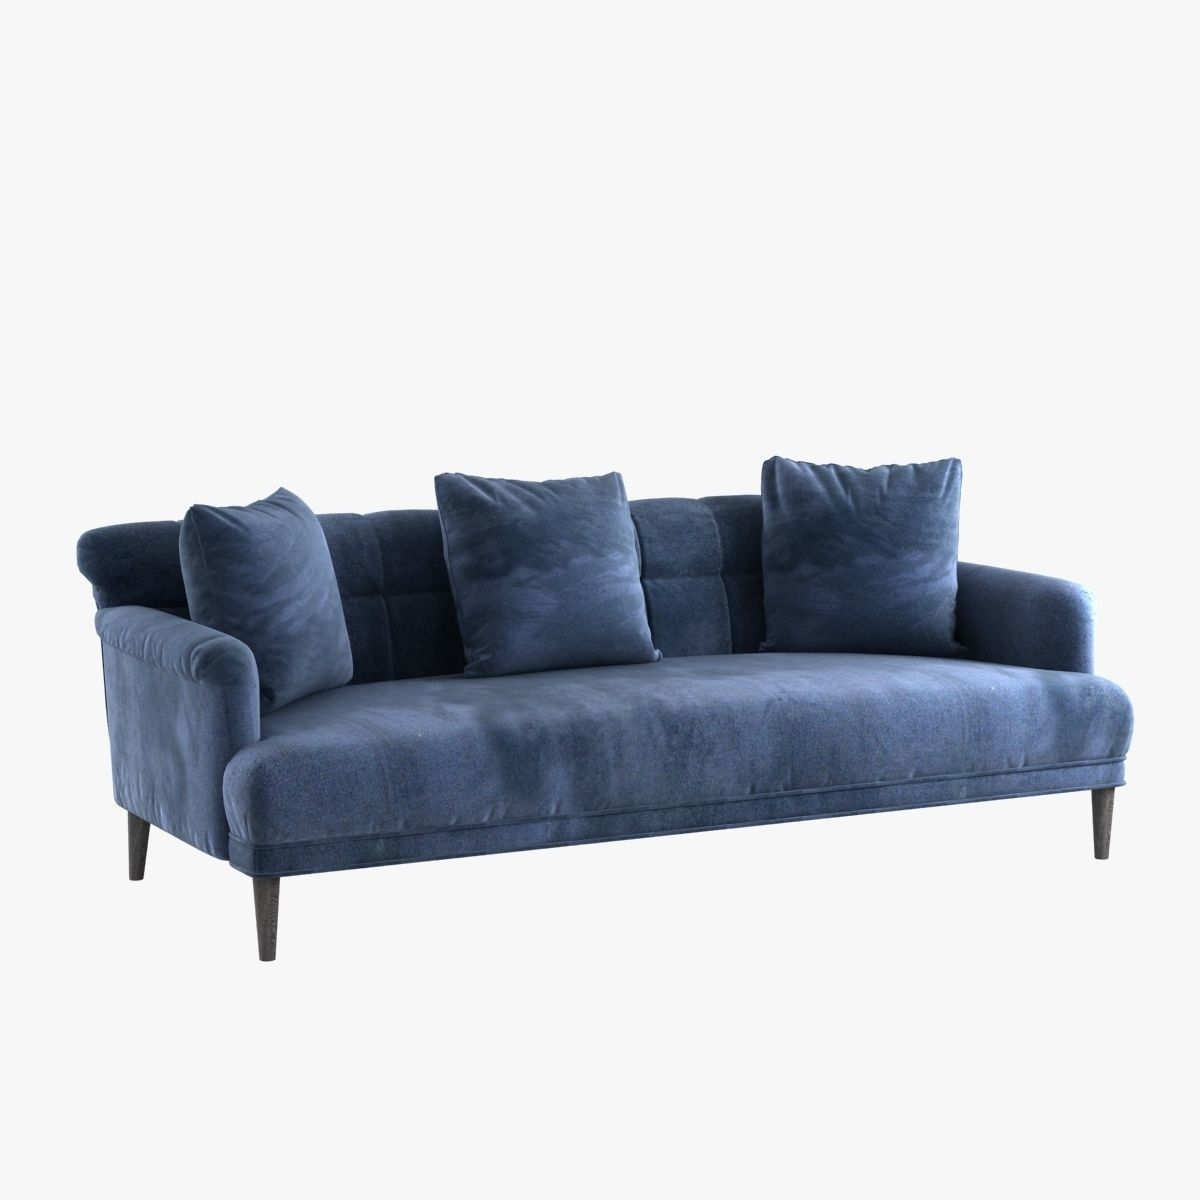 Custom made blue velvet sofa with pillows | 3D model